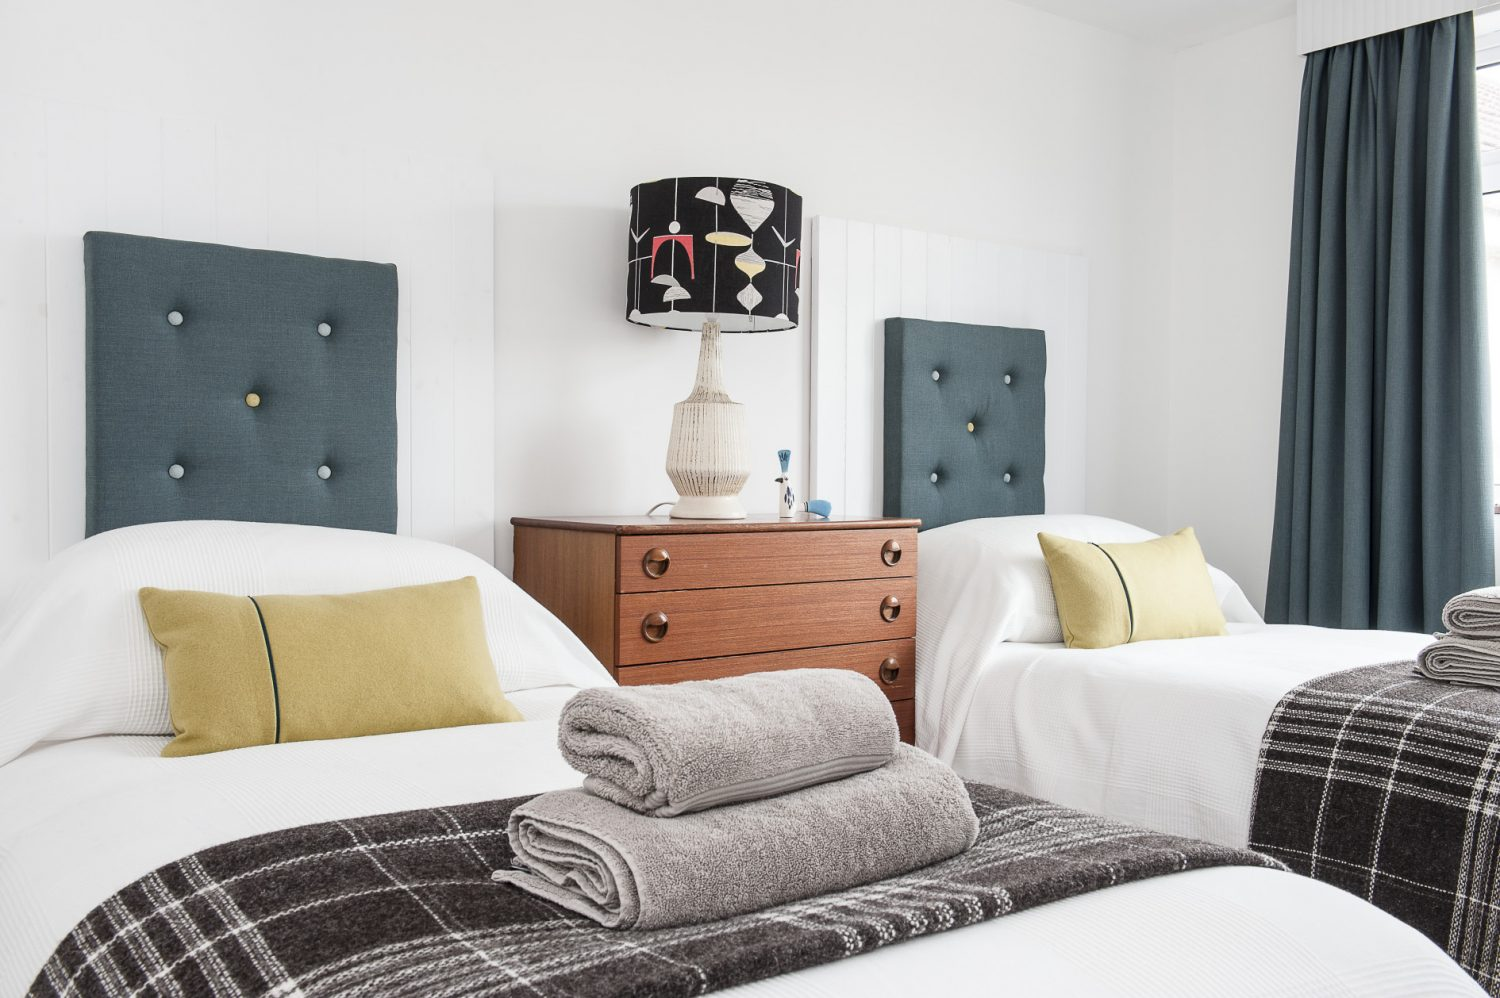 A third bedroom is nestled on the ground floor. James has once again employed his creative skills to make painted wooden headboards onto which he has mounted upholstered squares. A trio of framed album covers are mounted onto one wall